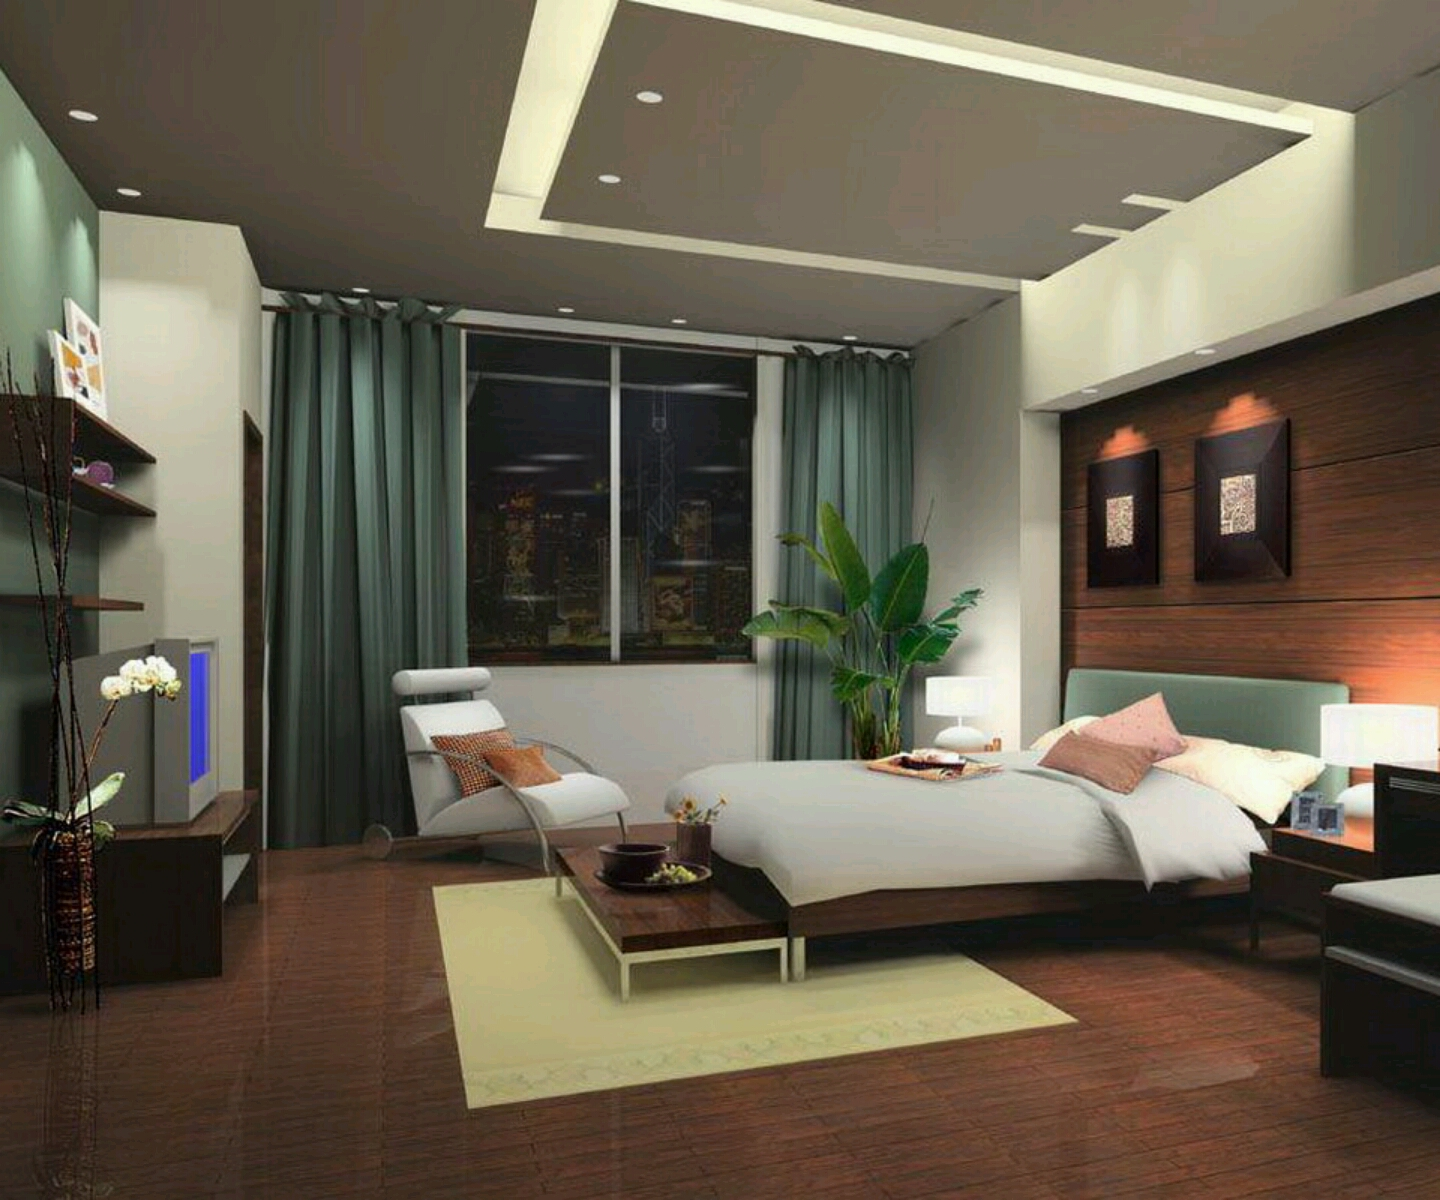 New home designs latest modern bedrooms designs best ideas for Latest bedroom designs